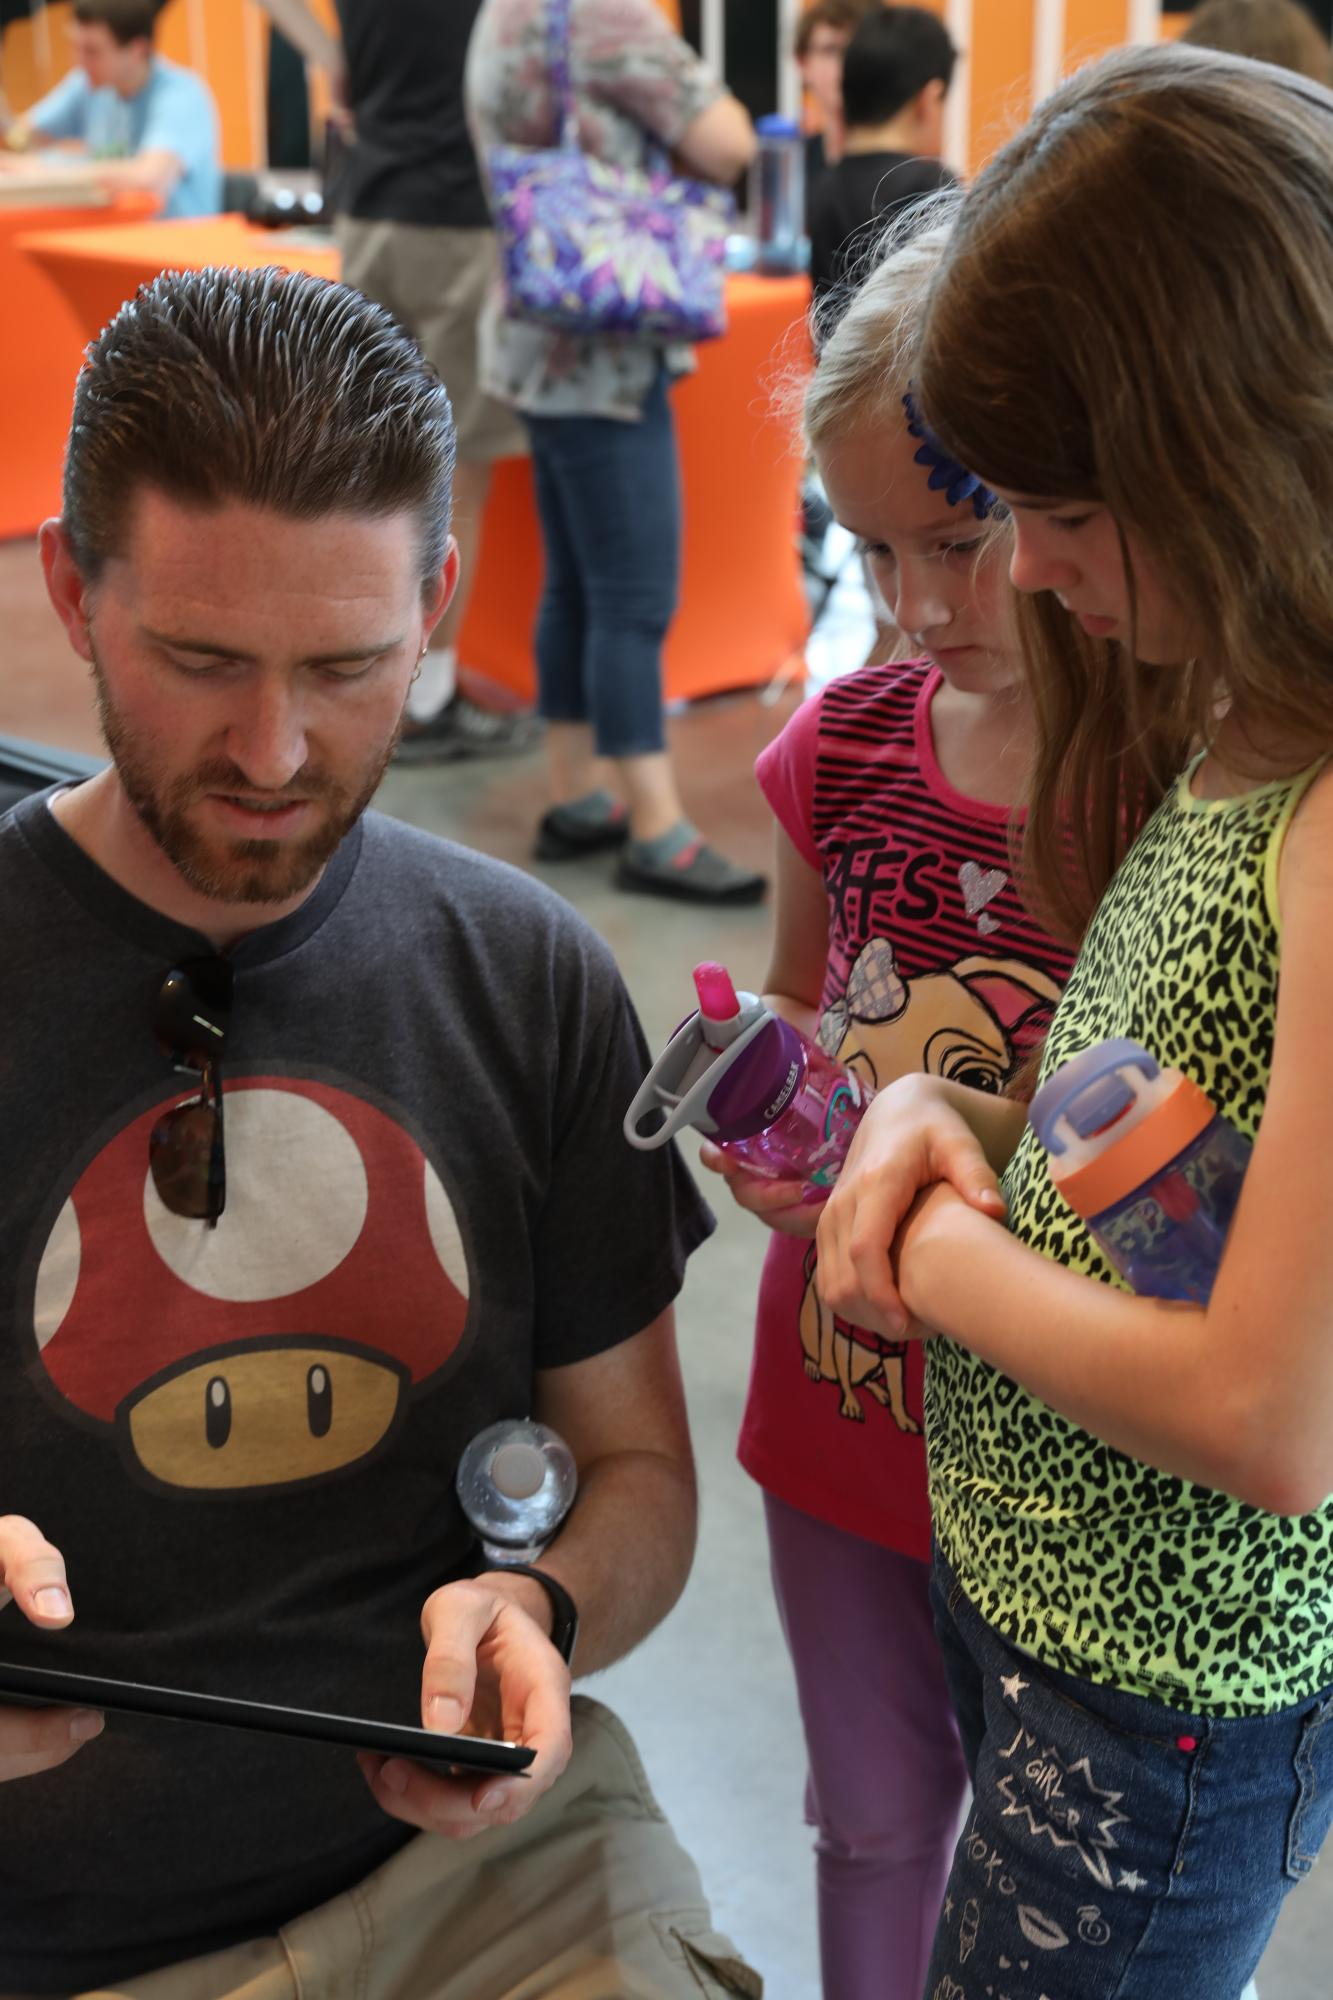 Matt Loachman, an RIT alumni, plays the video game, Crazy Platez, with his daughters Jaci (9) and Ada (6) at the Rochester Game Festival at the Gene Polisseni Center in Henrietta, N.Y. on Sept. 15, 2018. Photo by Cheyenne Boone